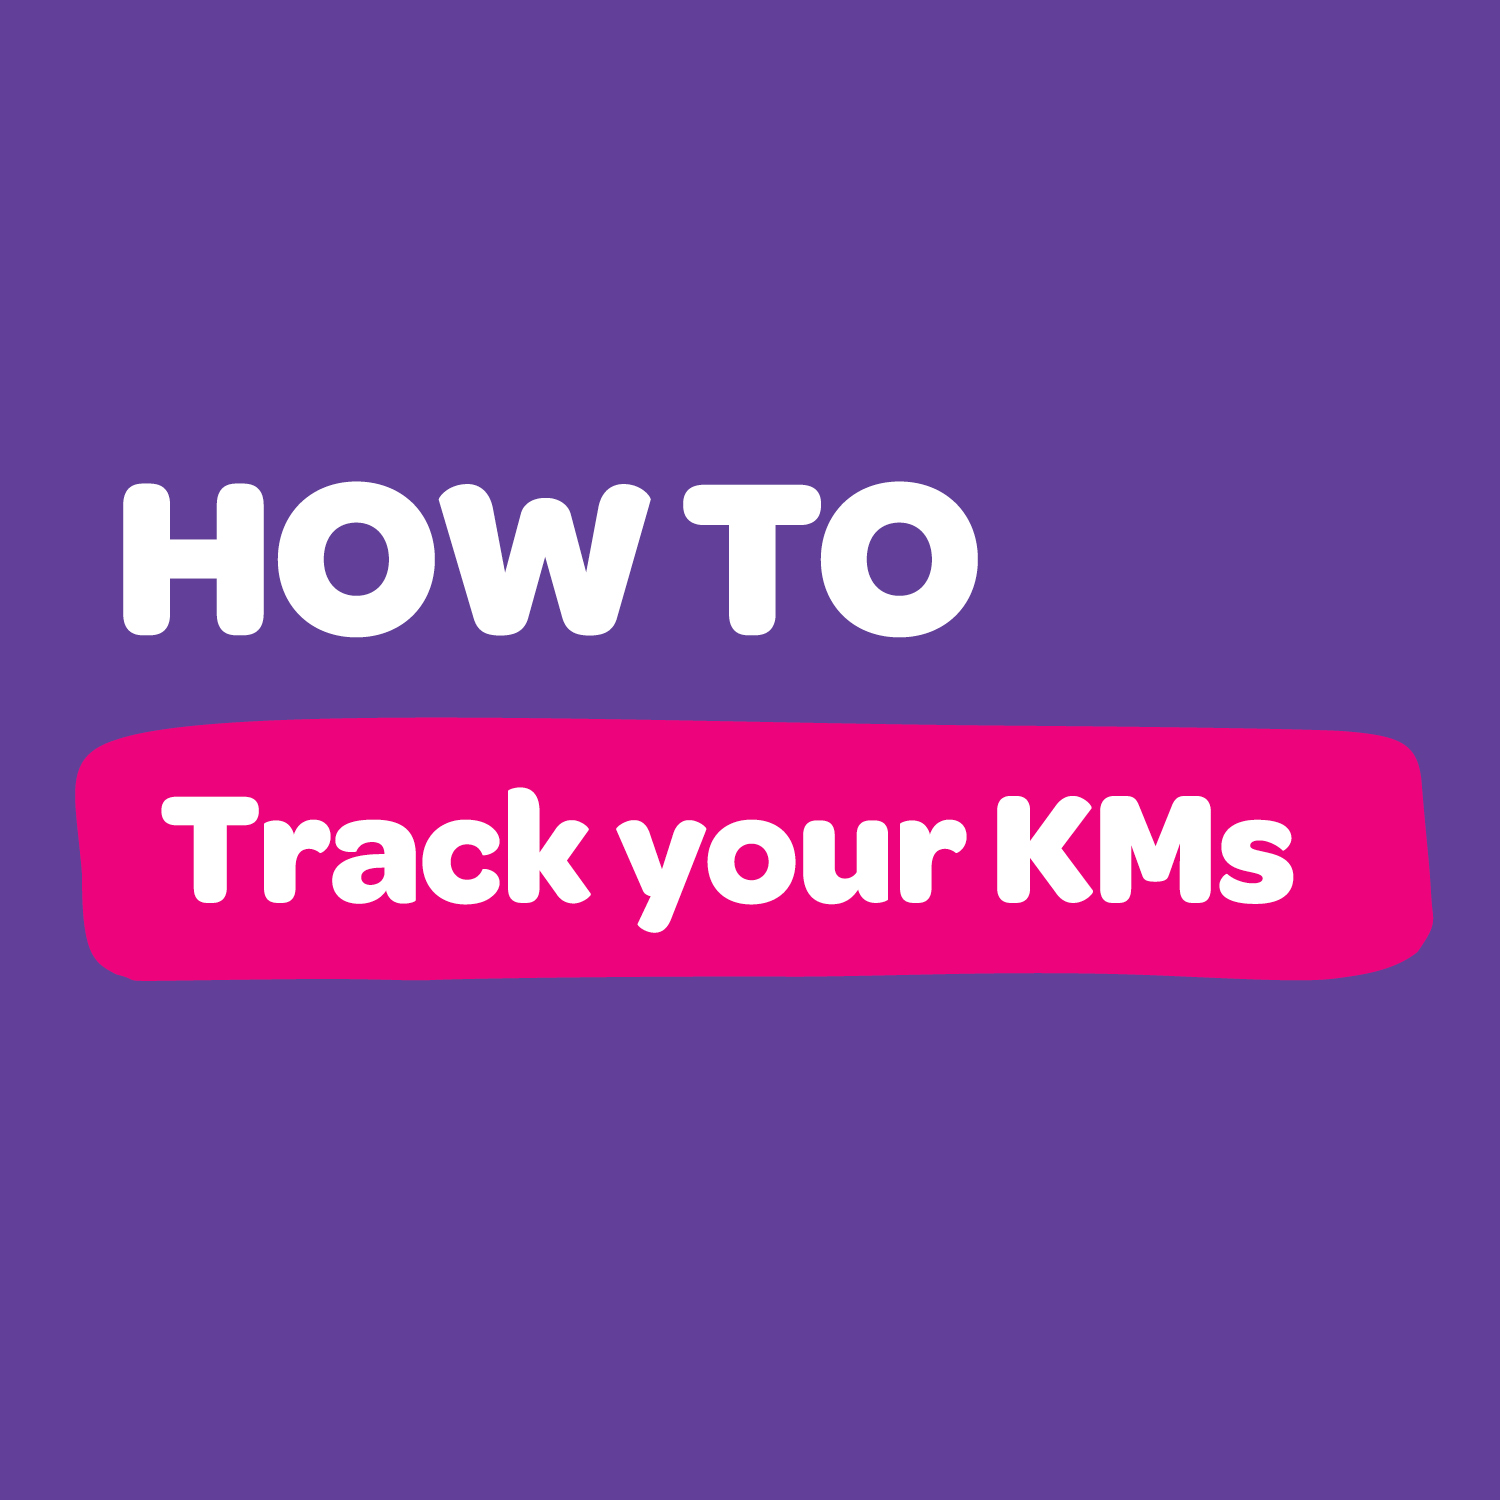 Tracking your KMs